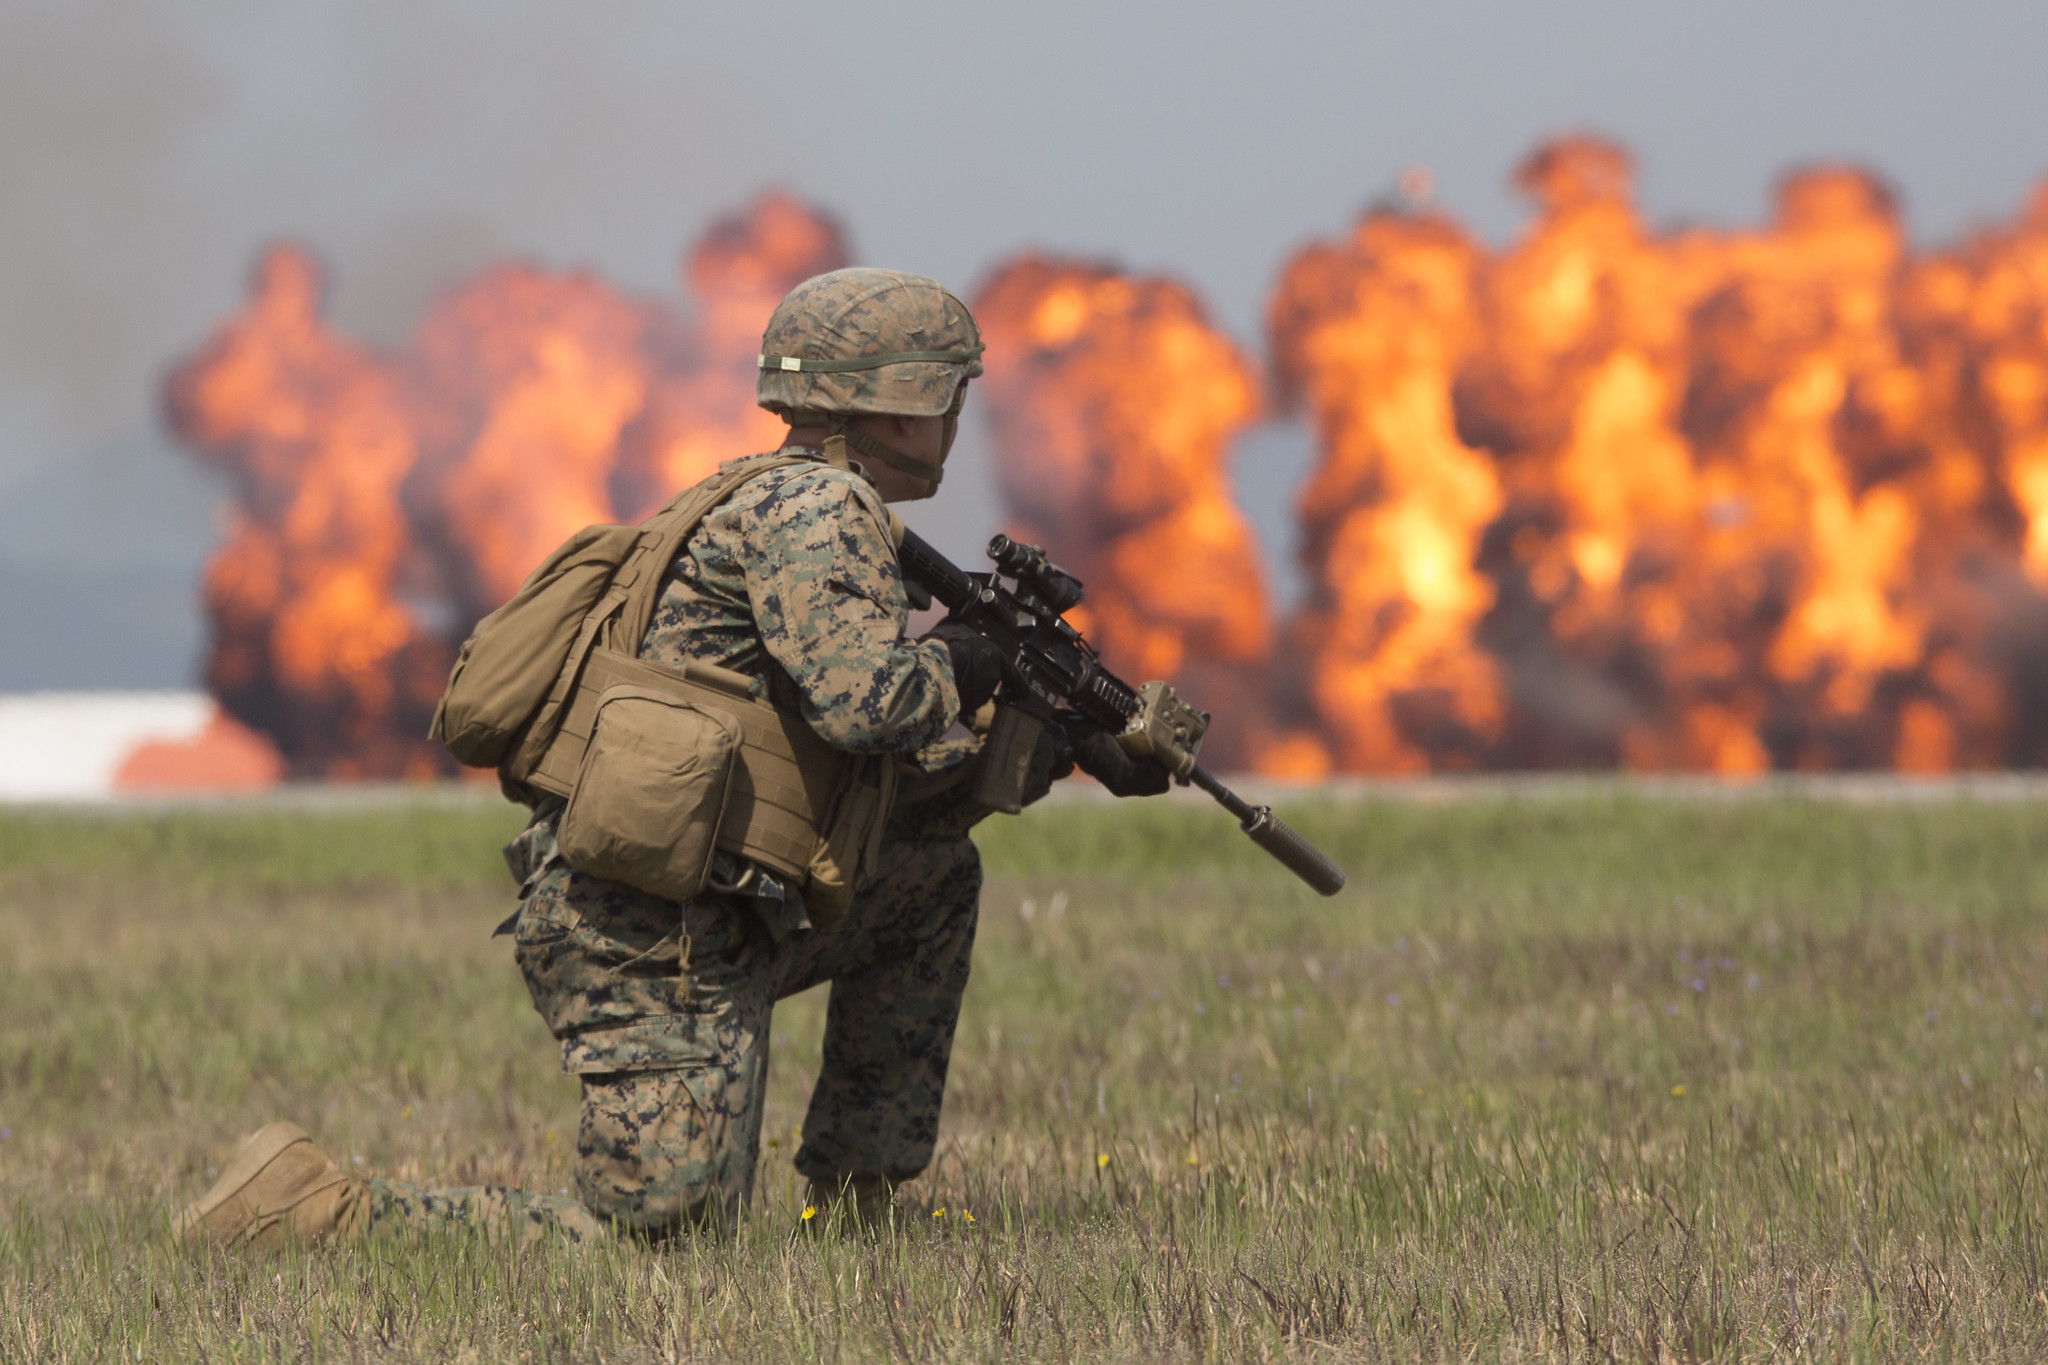 A Marine Air-Ground Task Force demonstration is conducted May 5, 2019, during the 43rd Japan Maritime Self-Defense Force – Marine Corps Air Station Iwakuni Friendship Day at MCAS Iwakuni, Japan. (Lance Cpl. Harrison Rakhshani/Marine Corps)